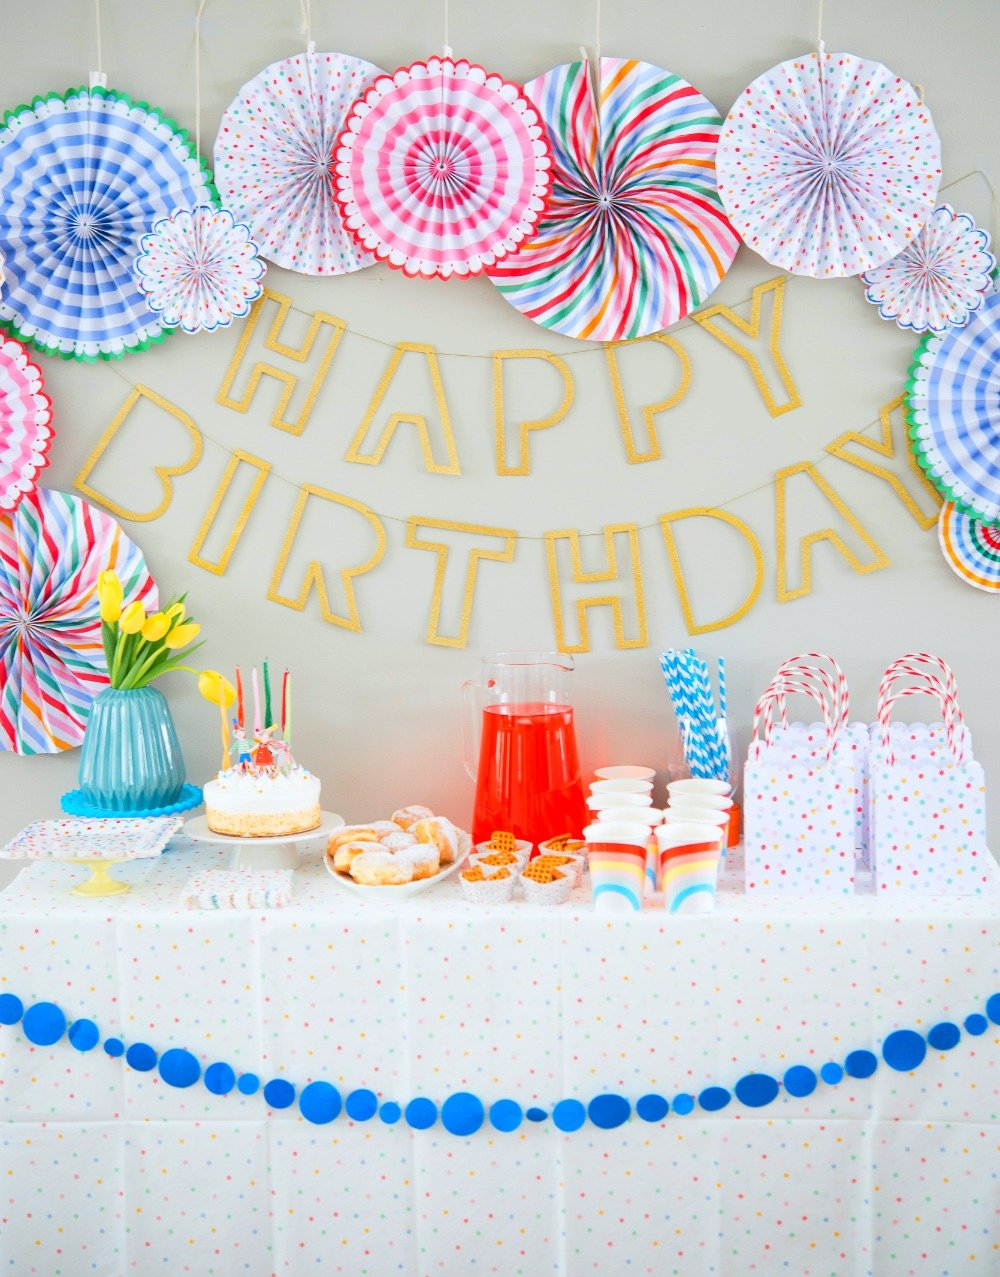 Polka Dot Birthday Party Decorations Crate Kids Blog